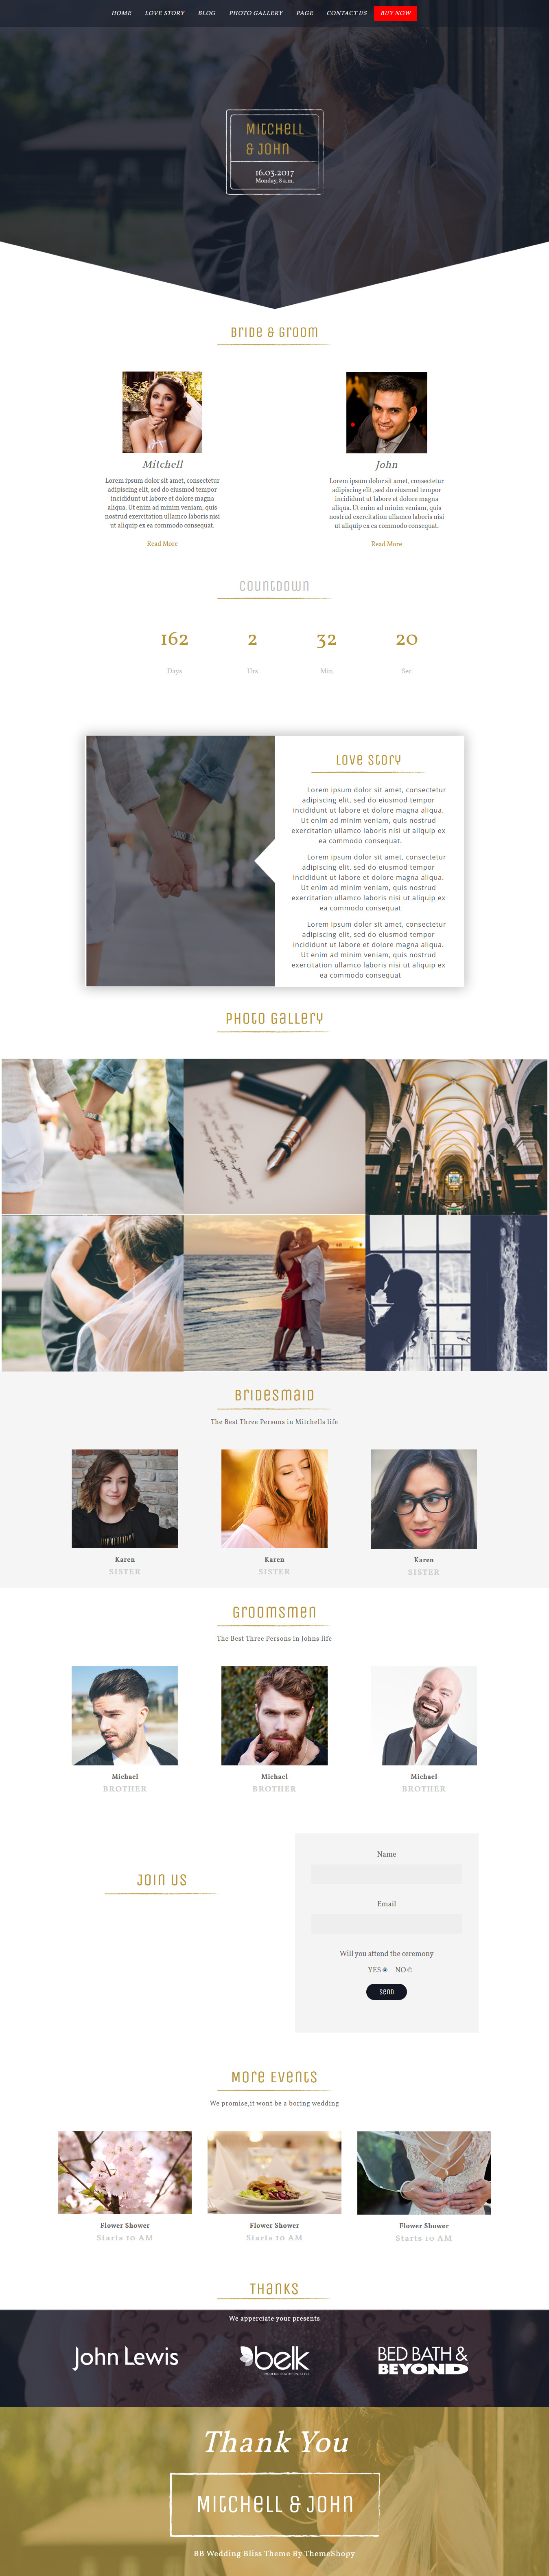 bb wedding bliss best free feminine wordpress theme - 10+ Best Free Feminine WordPress Themes